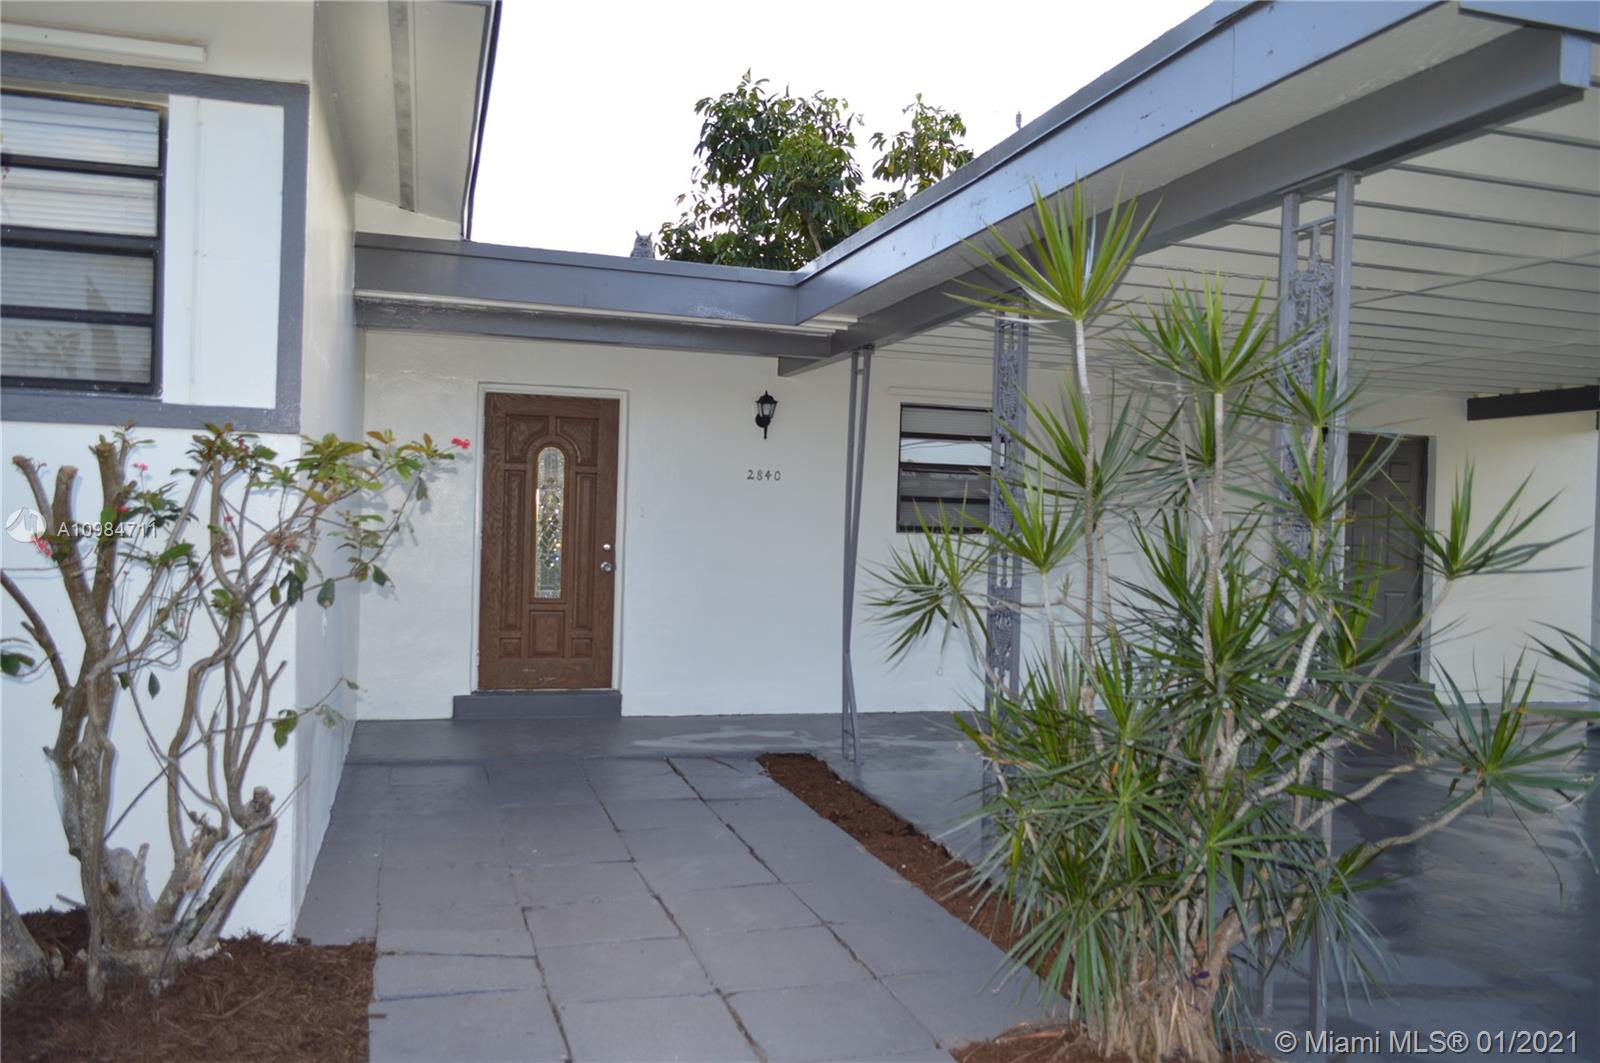 2840 SW 4th St, Fort Lauderdale, Florida 33312, 4 Bedrooms Bedrooms, ,2 BathroomsBathrooms,Residential,For Sale,2840 SW 4th St,A10984711